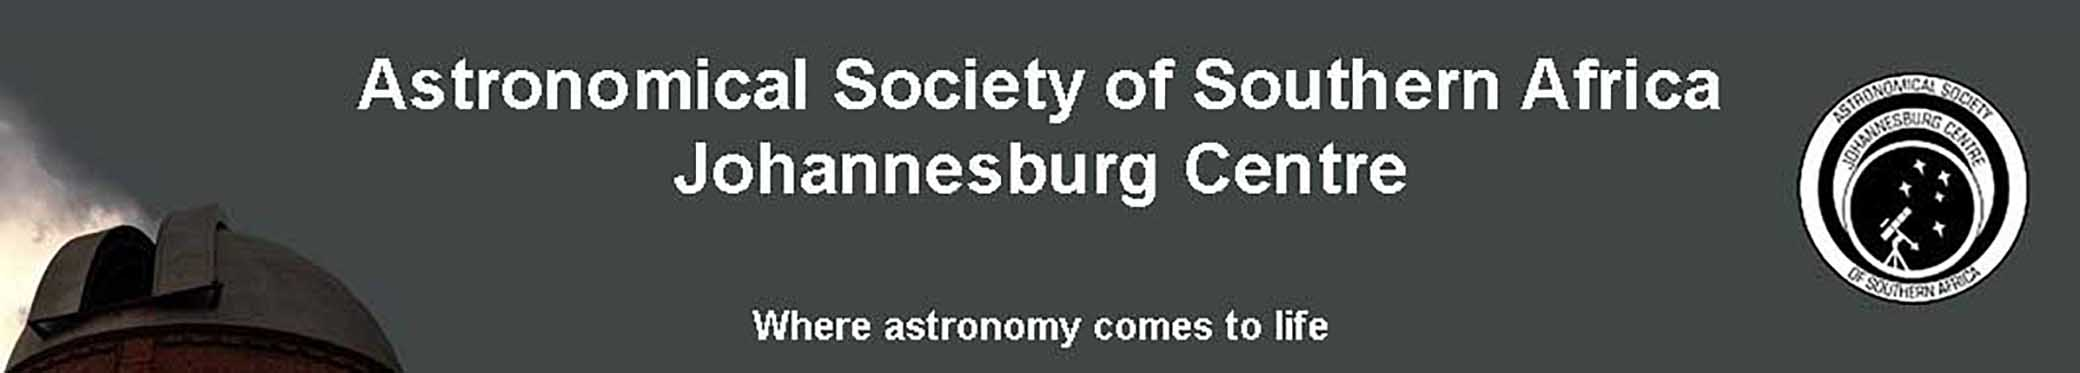 Astronomical Society of Southern Africa Johannesburg Centre